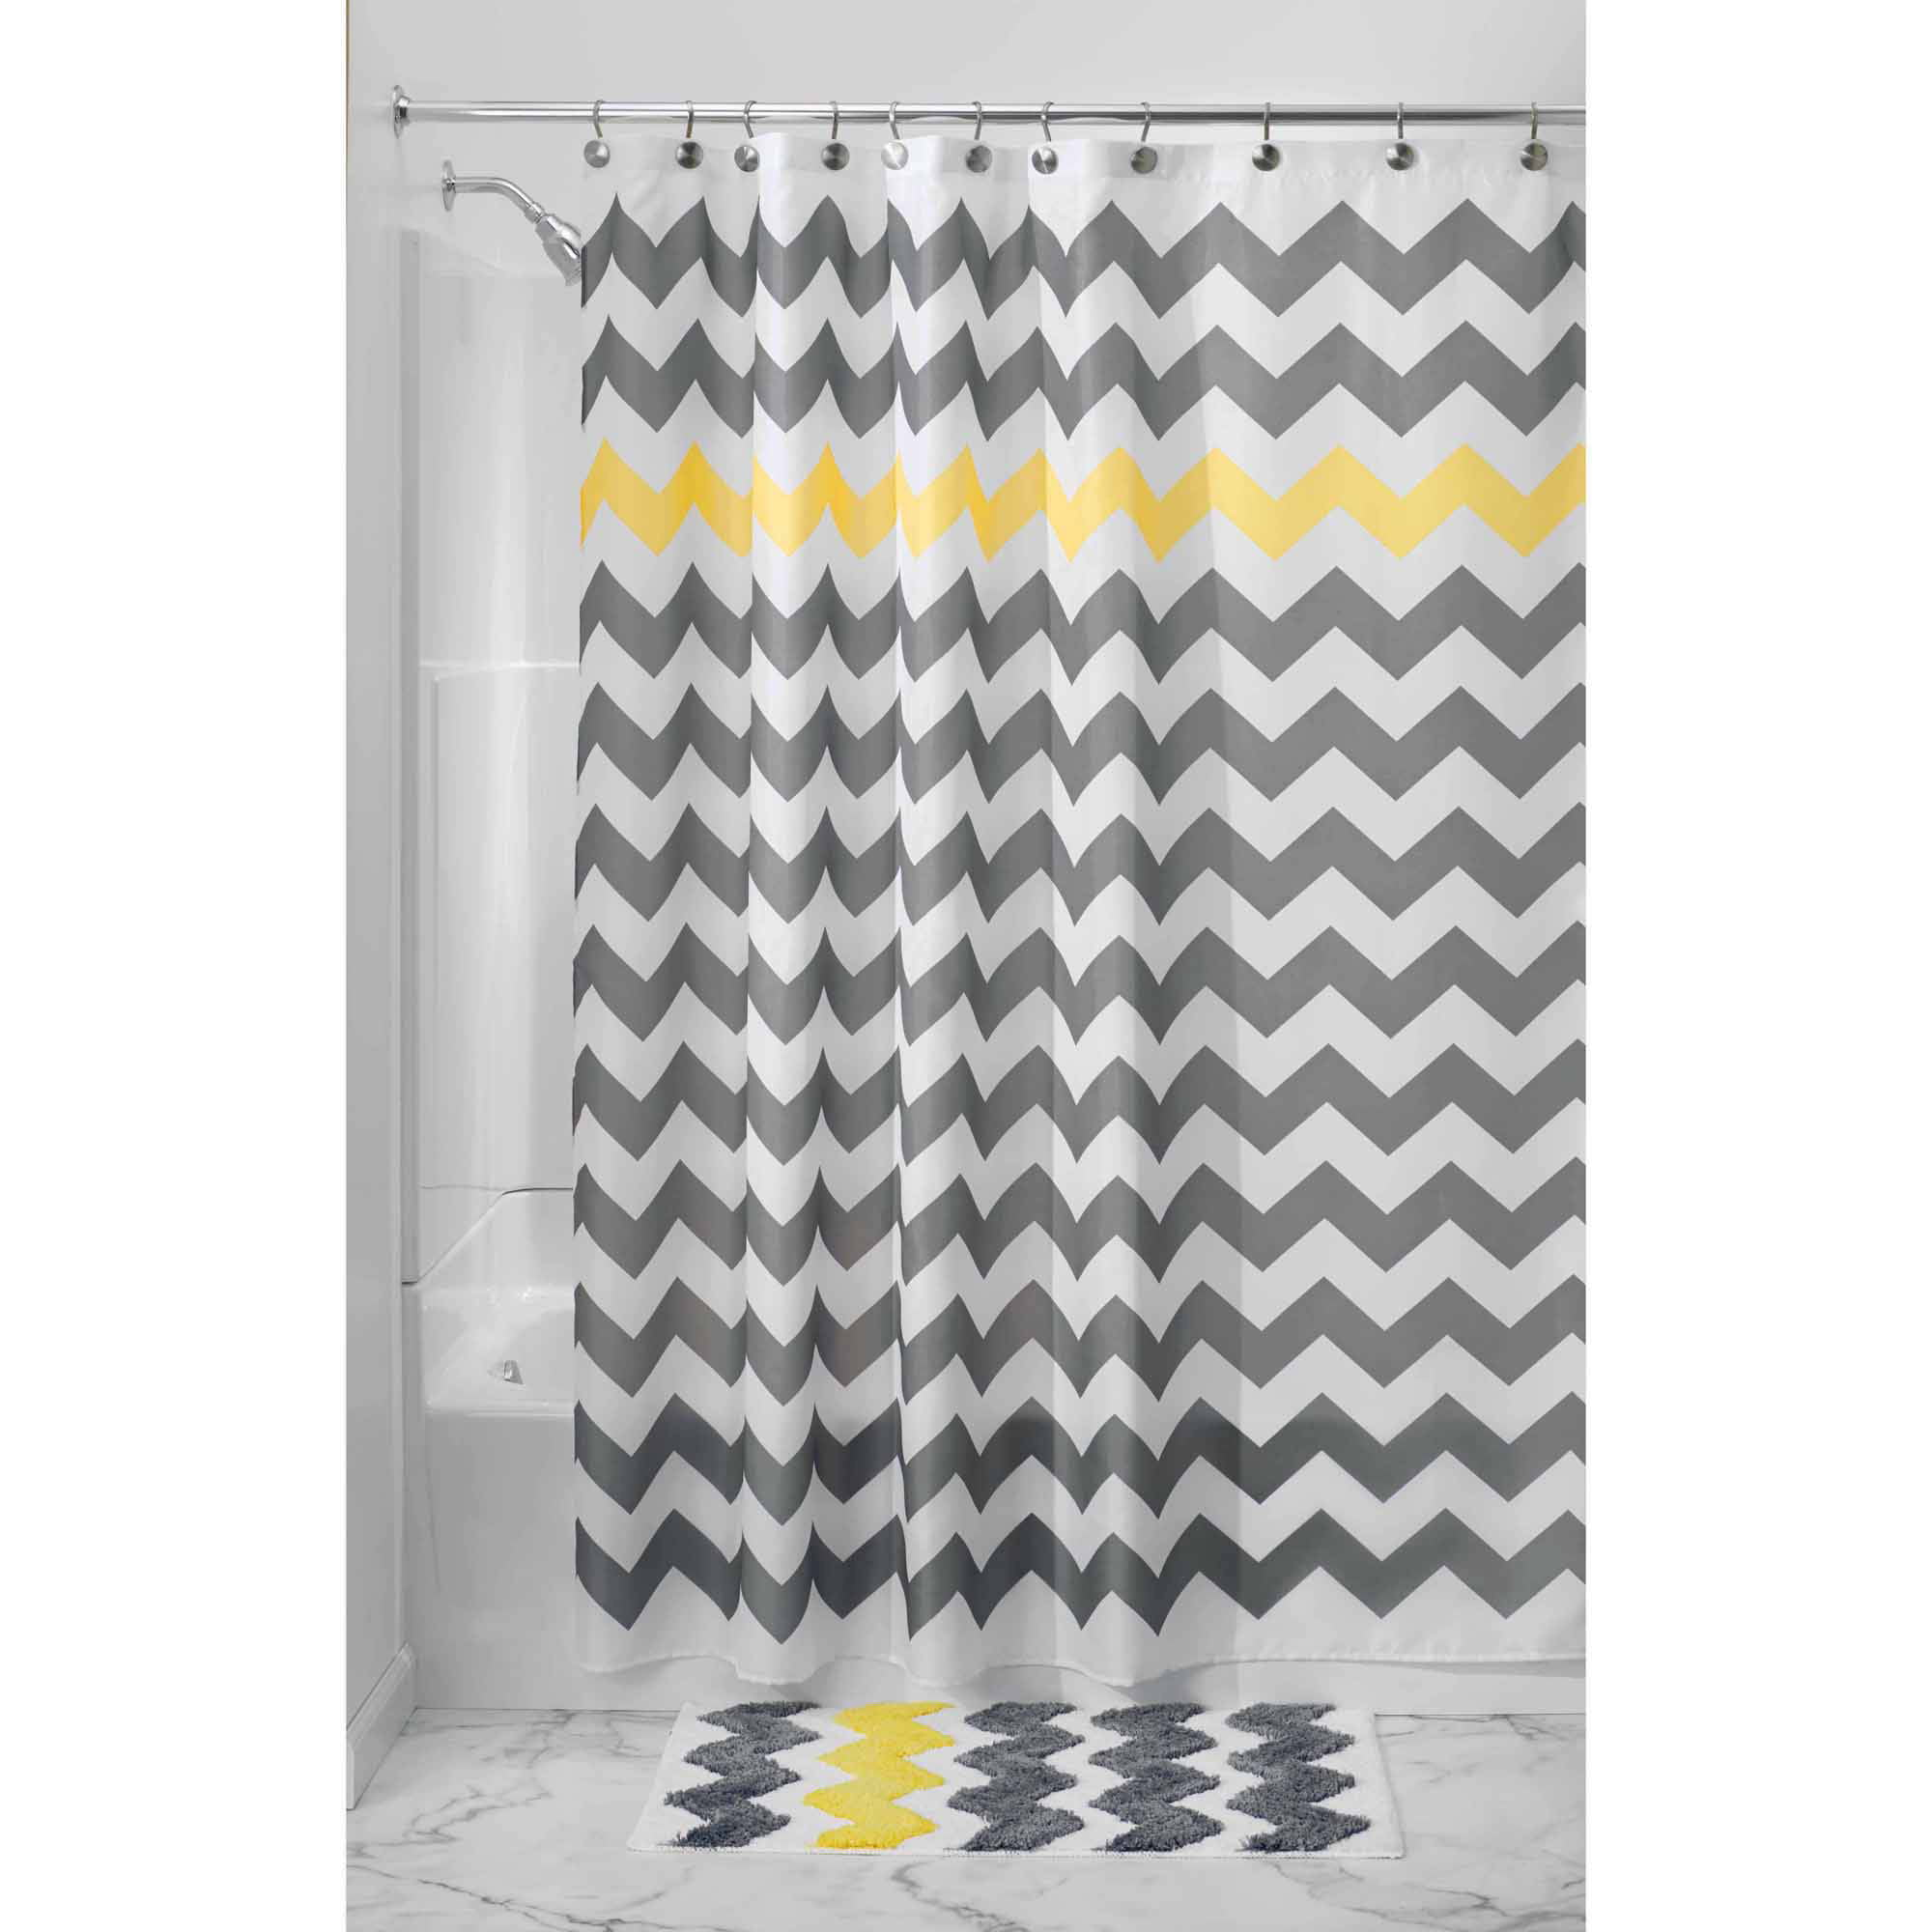 Better Homes and Gardens Heavy Weight PEVA Shower Liner Collection - Walmart.com